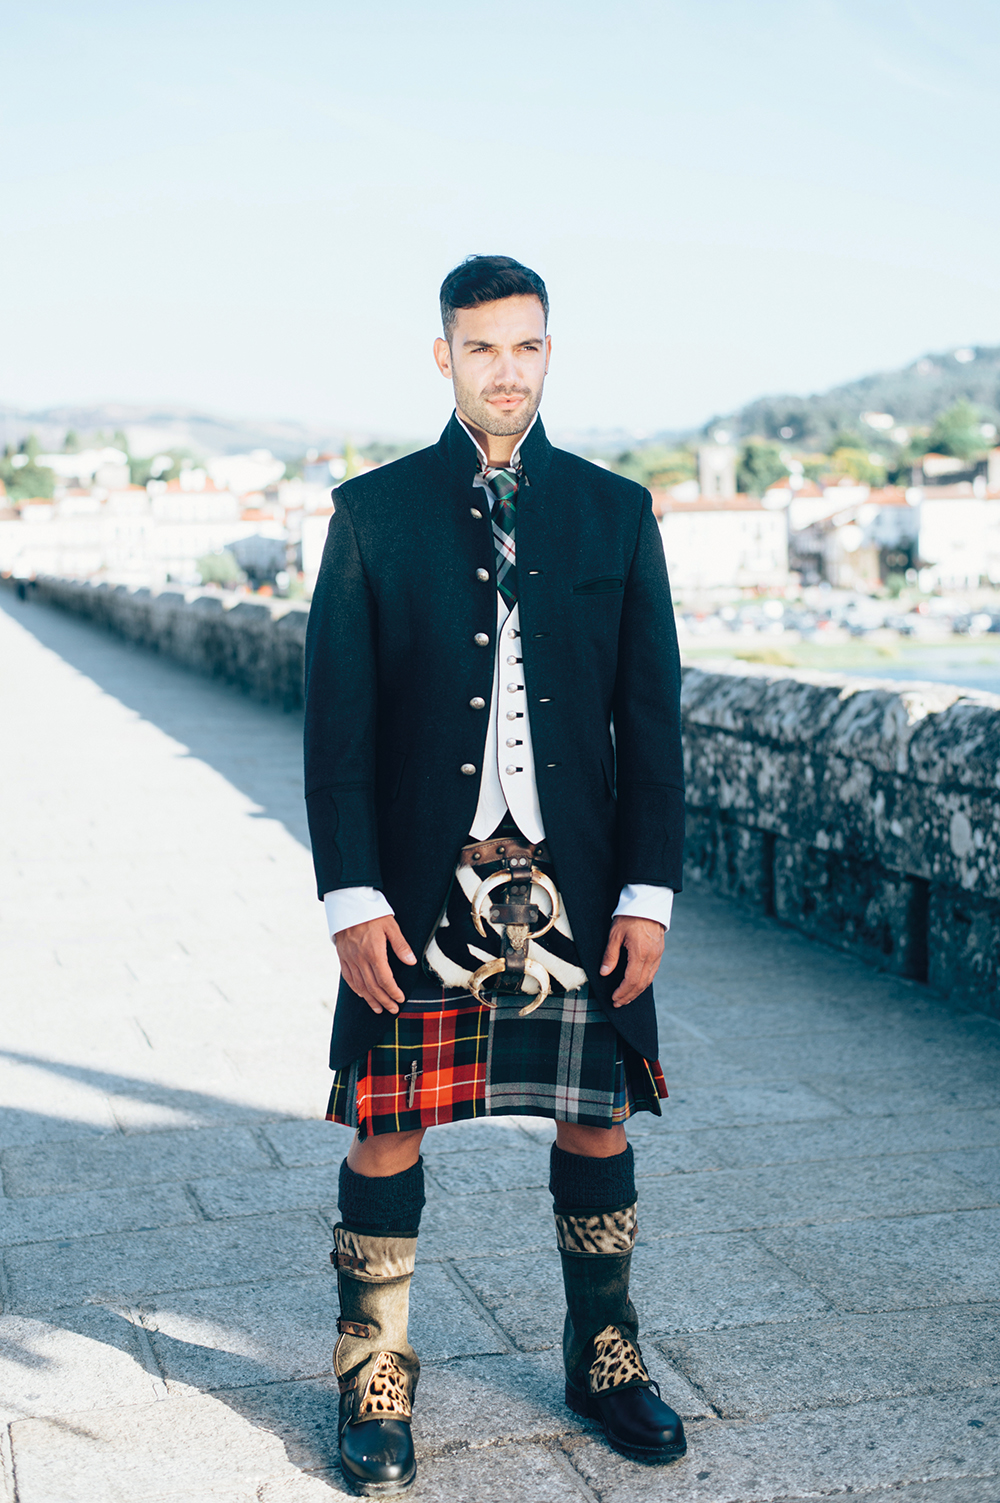 Kilts from Carinthia | Rettl 1868 | 5 labels to watch | that kind of style